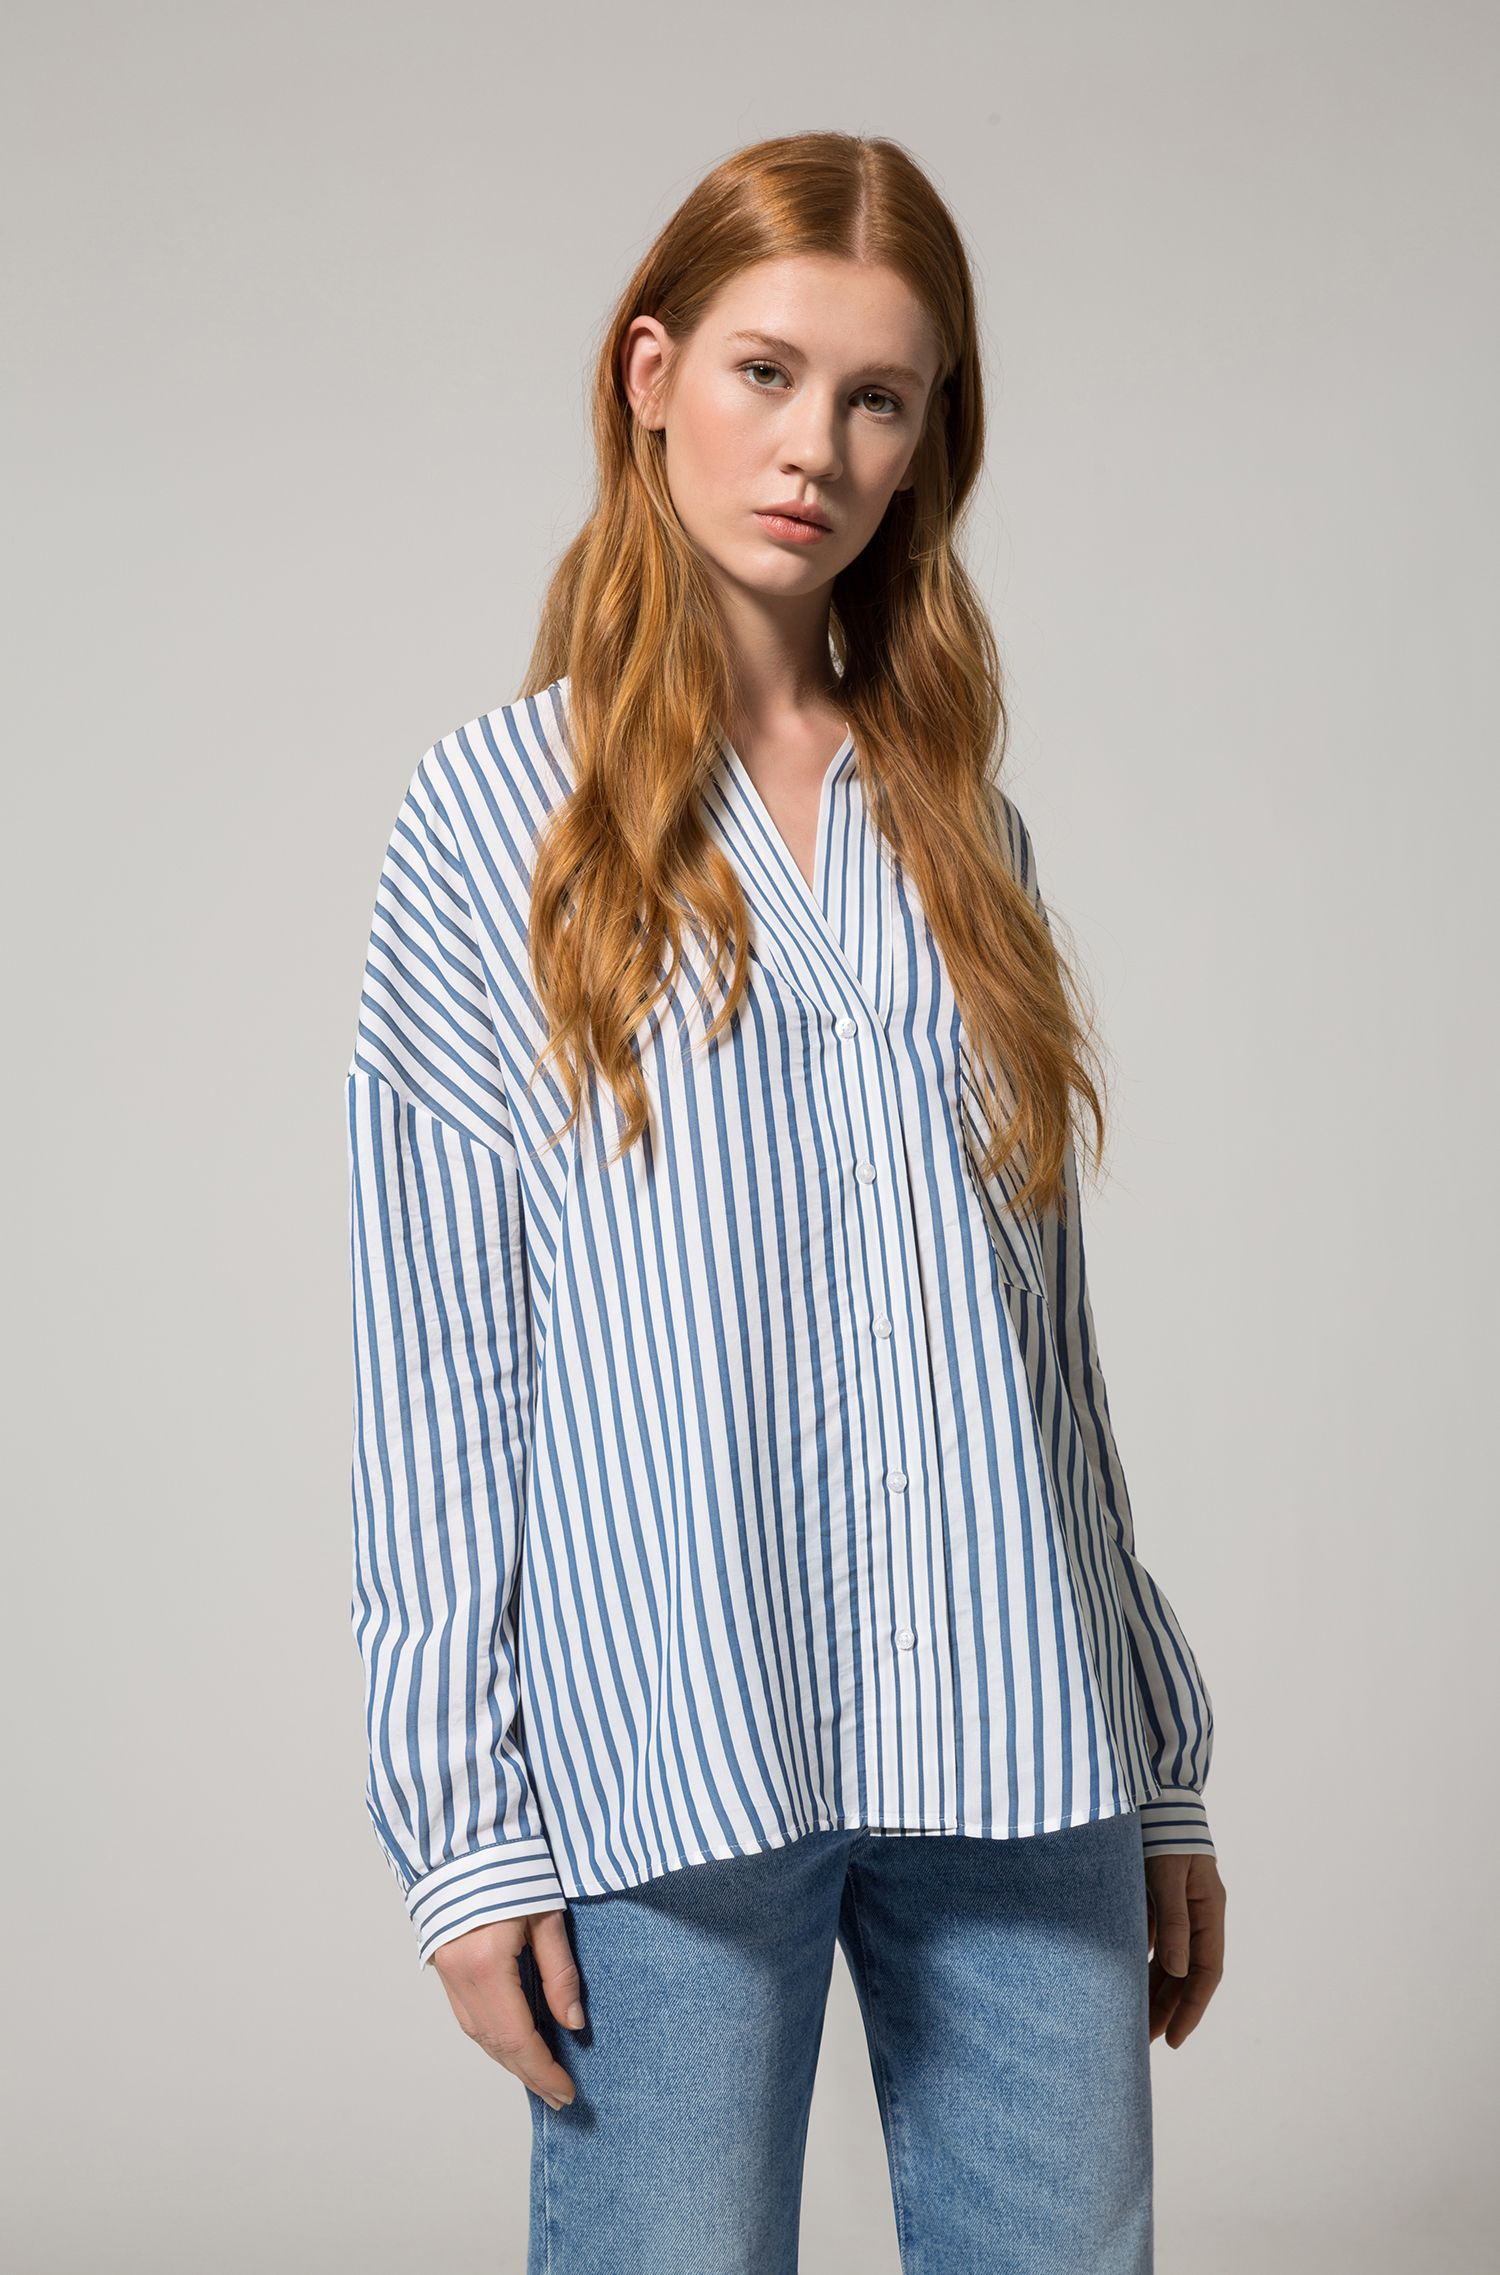 Oversized-fit striped blouse with stand collar